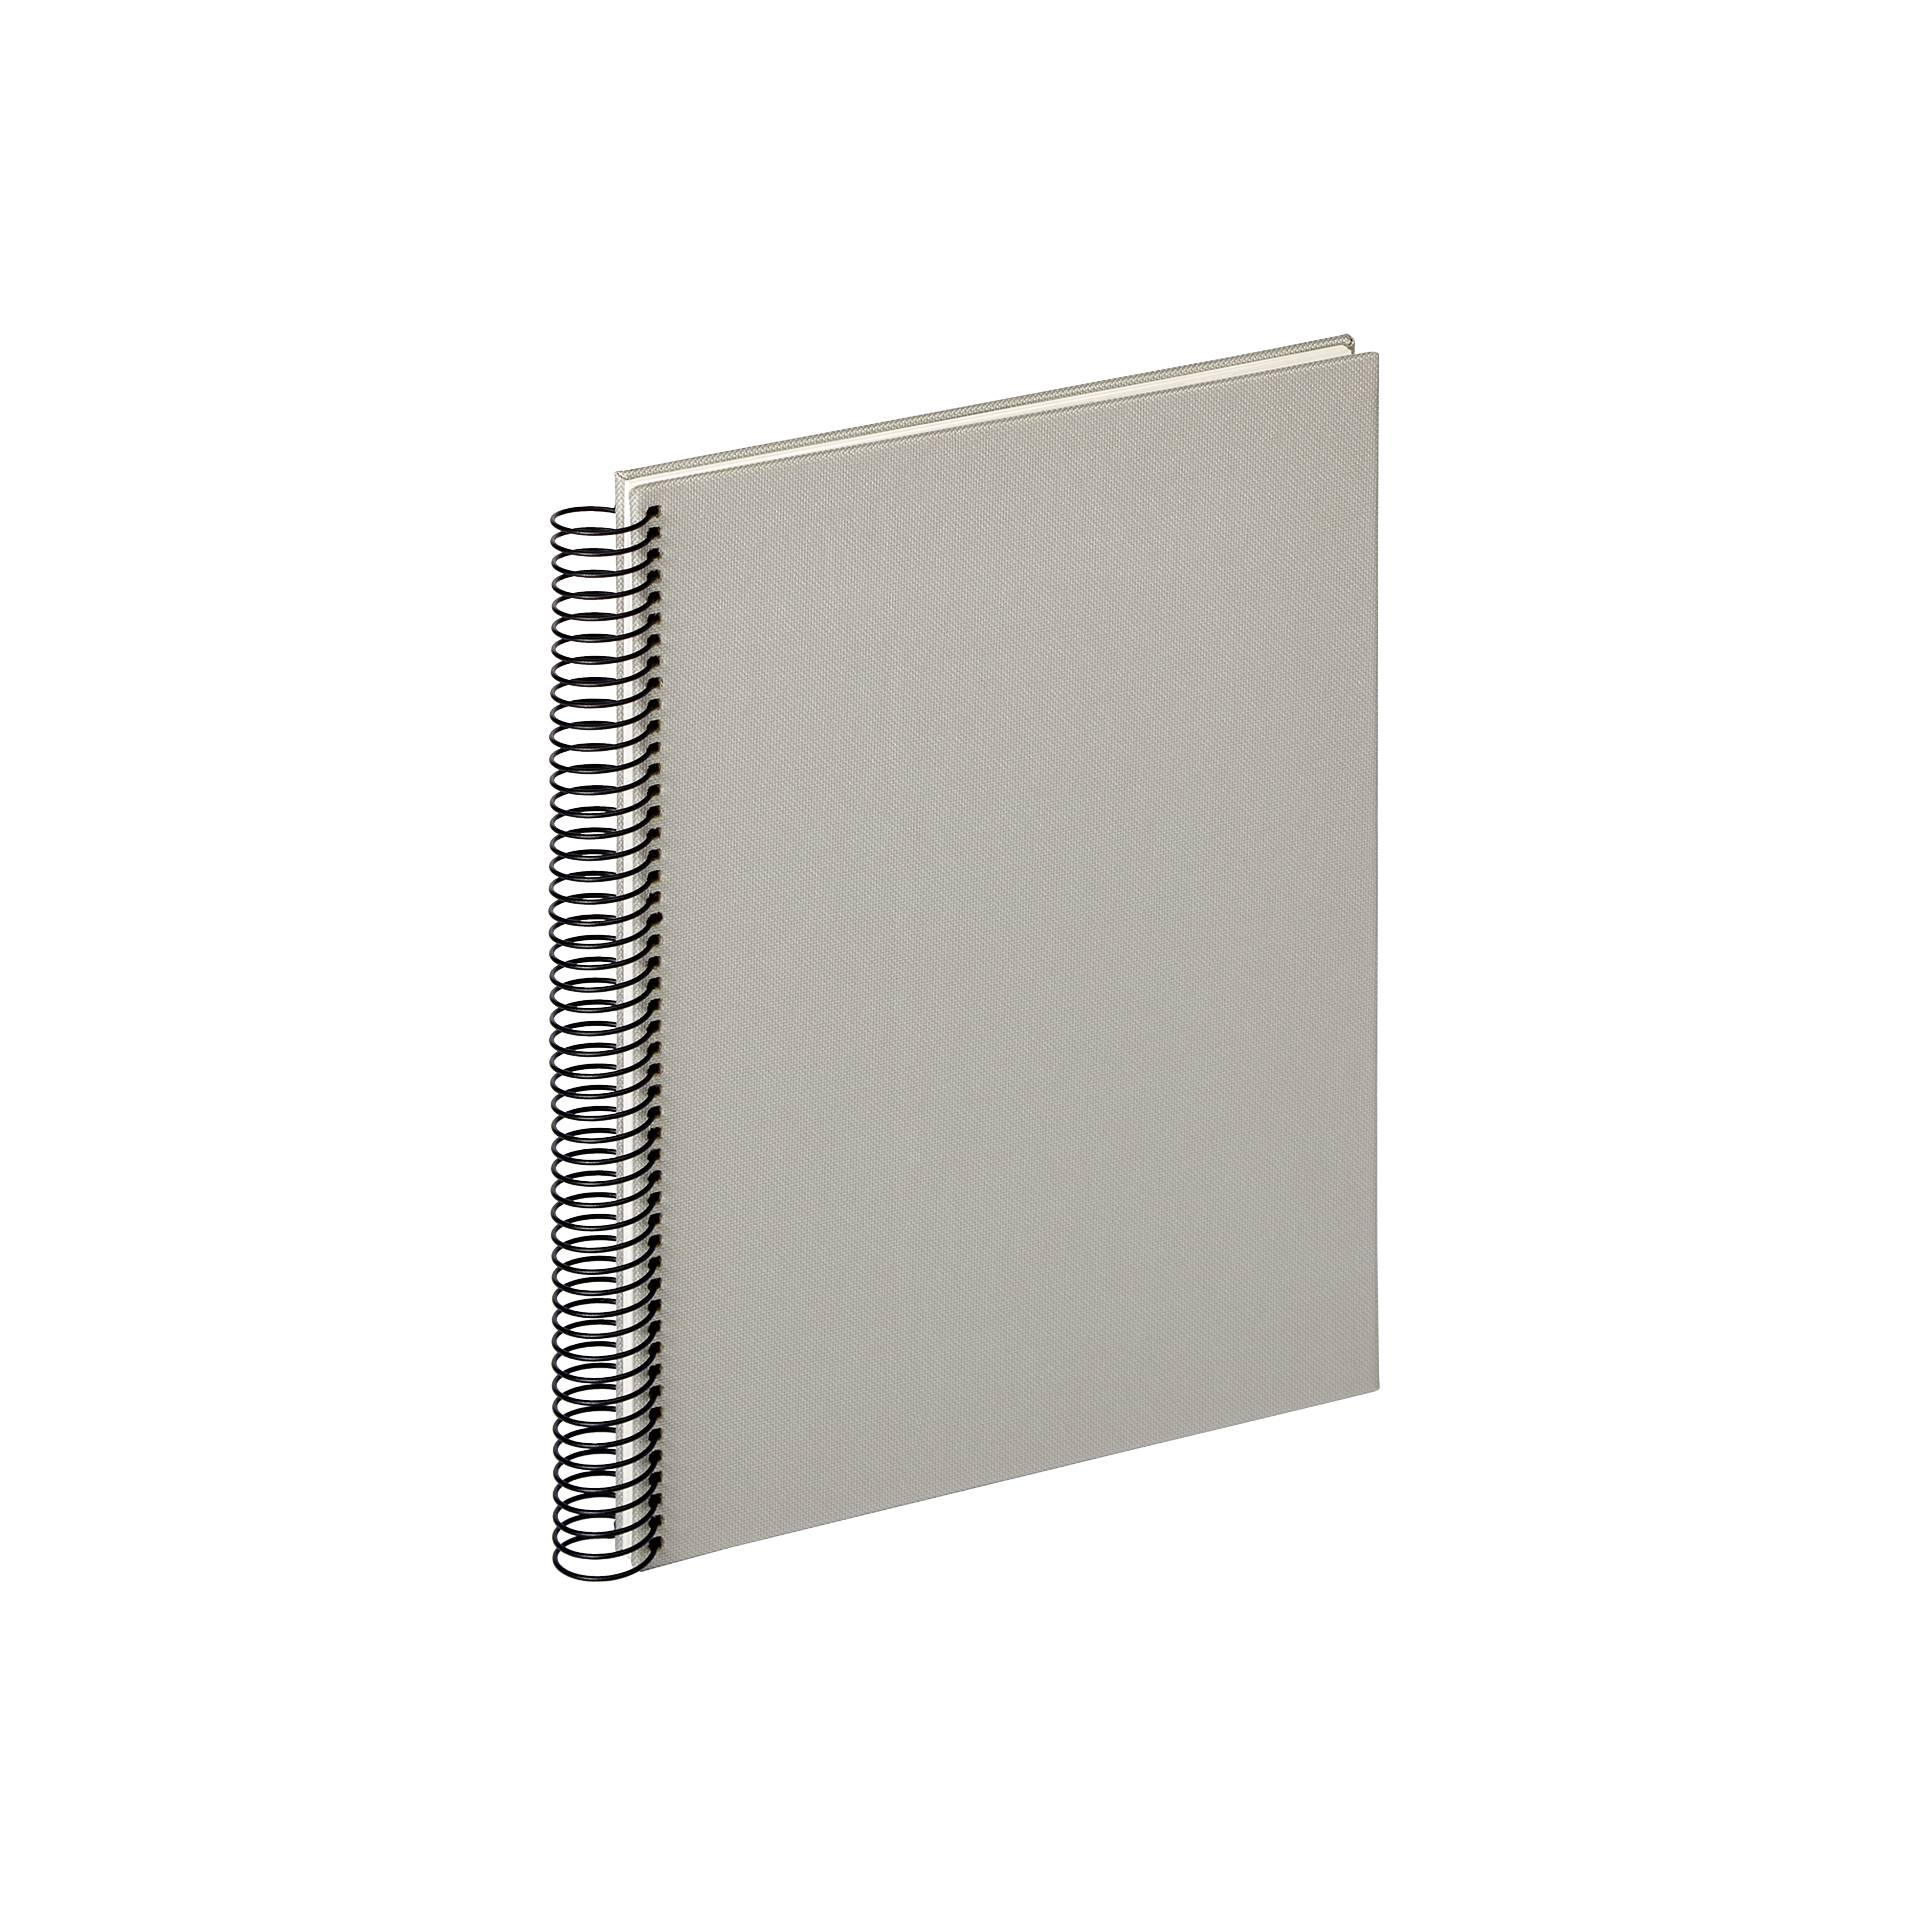 Walther Lino Spiral Light Grey 21x29.7 - 40 white pages